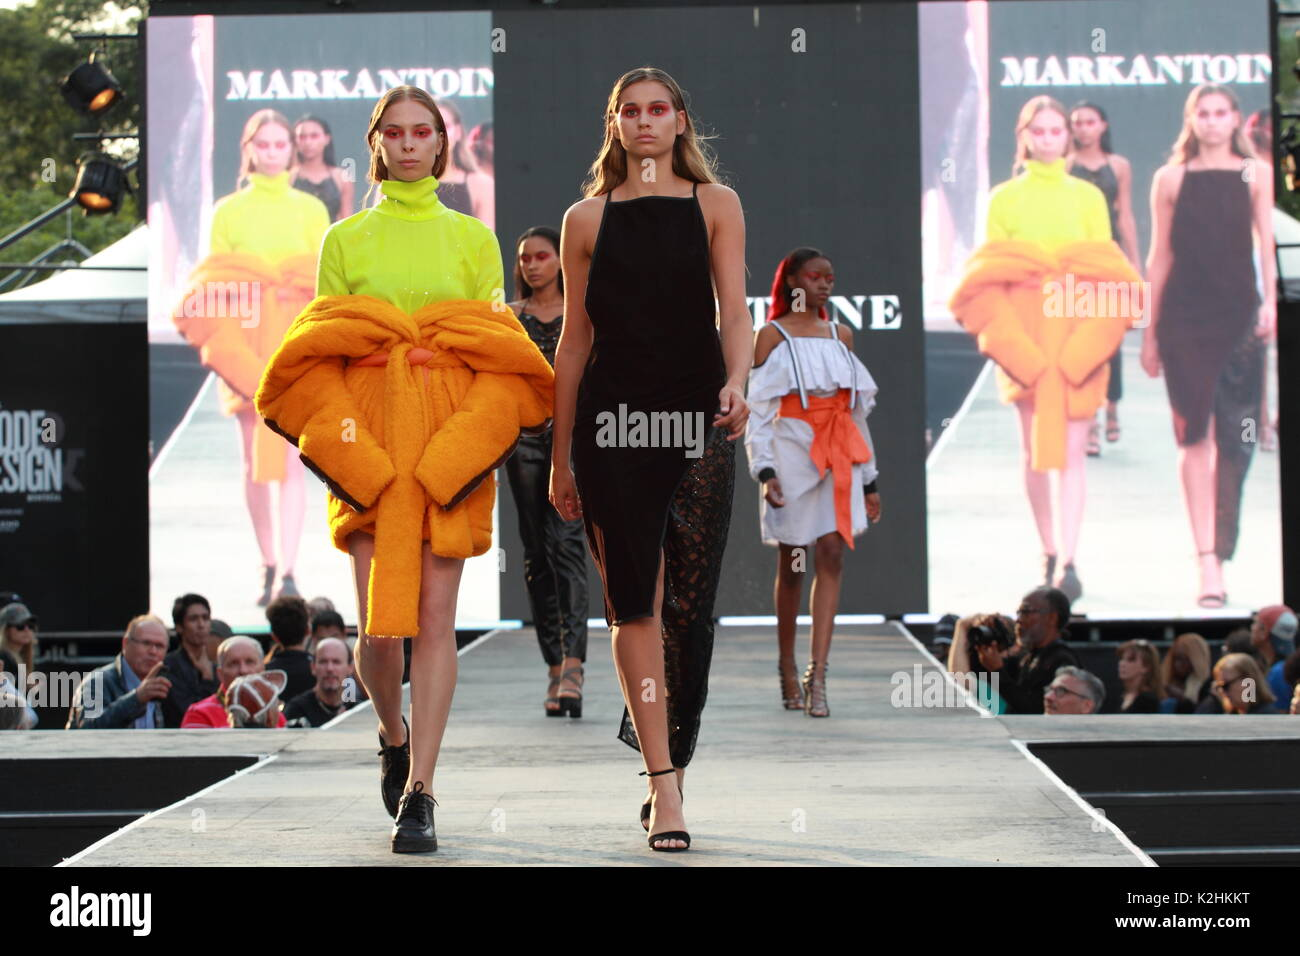 Montreal,Canada 25/08/2017.  Four models walk on the runway at the Markantoine fashion show held during the Fashion and Design Festival. - Stock Image